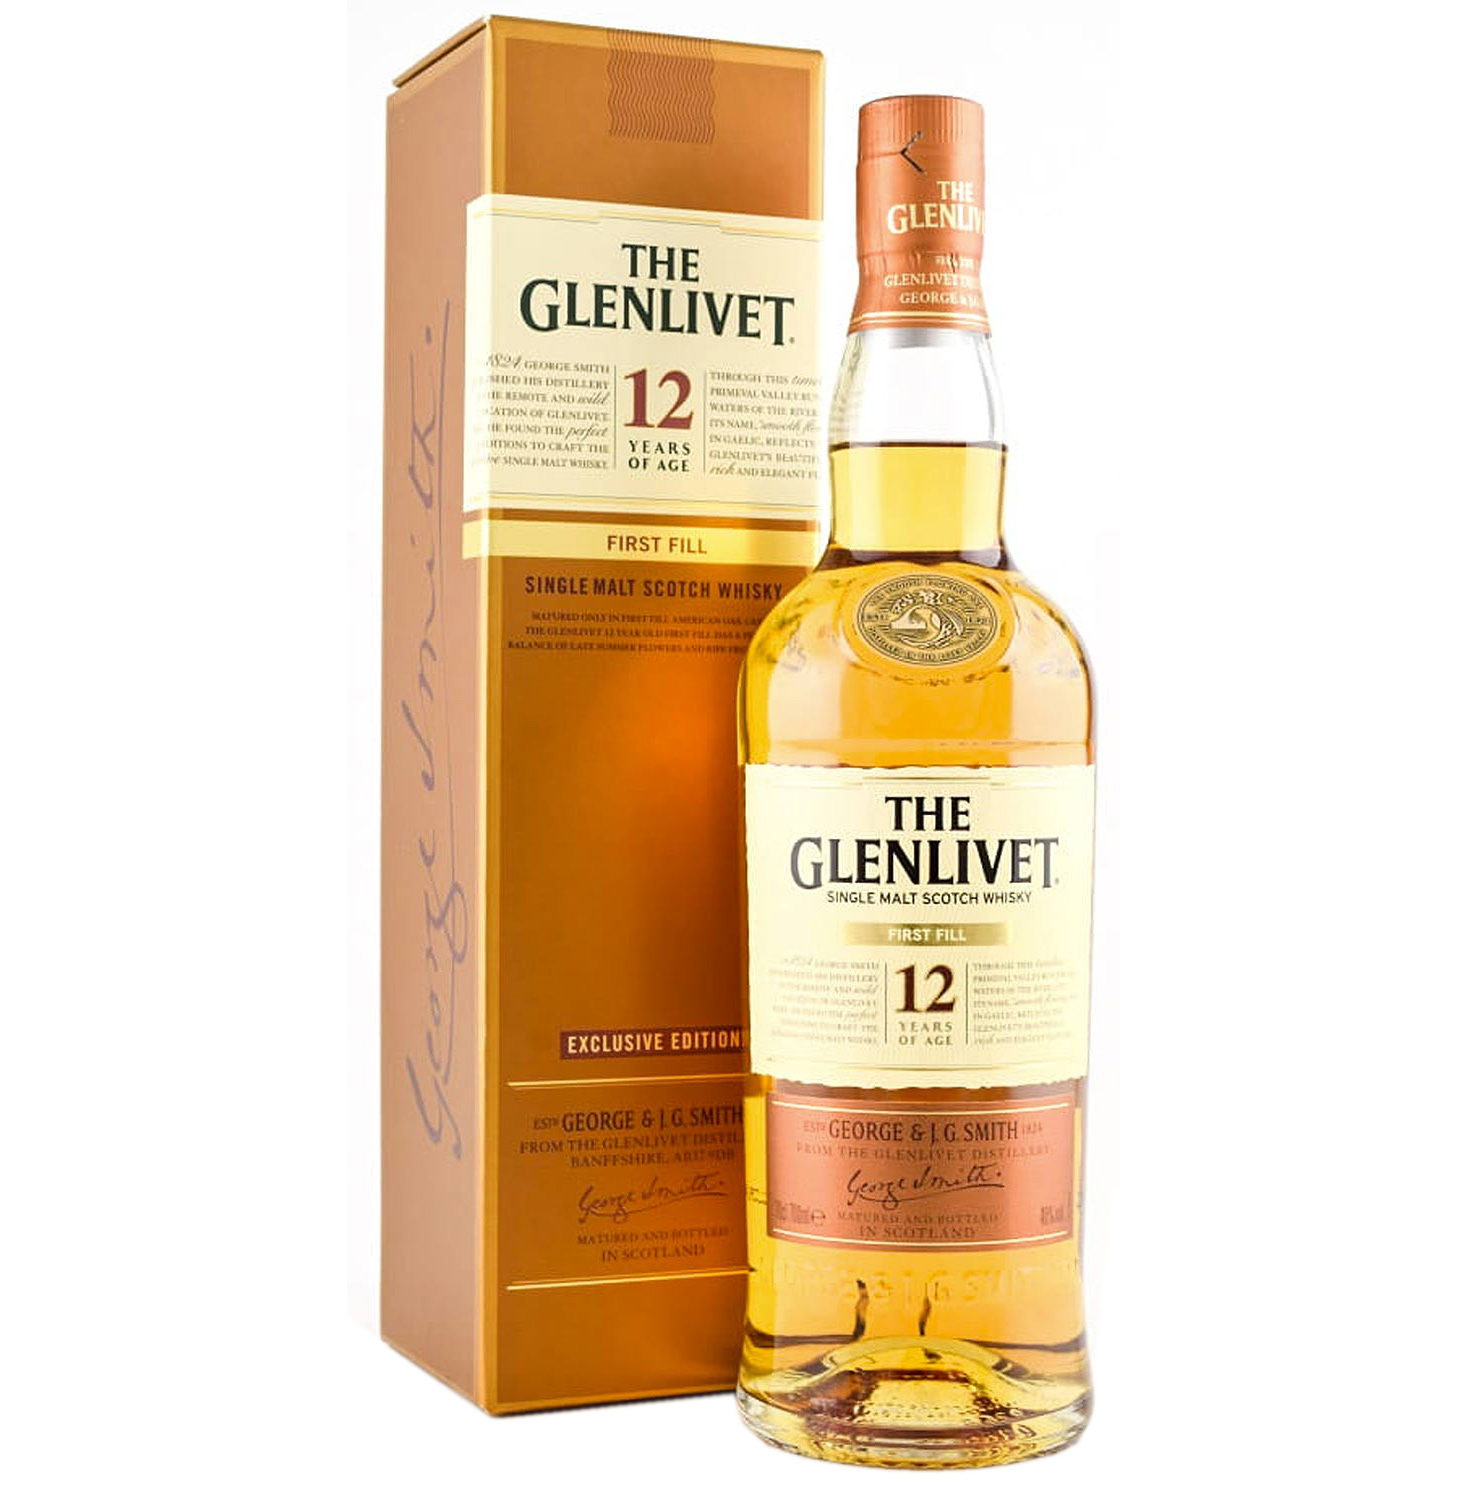 Whisky The Glenlivet 12 Years First Fill